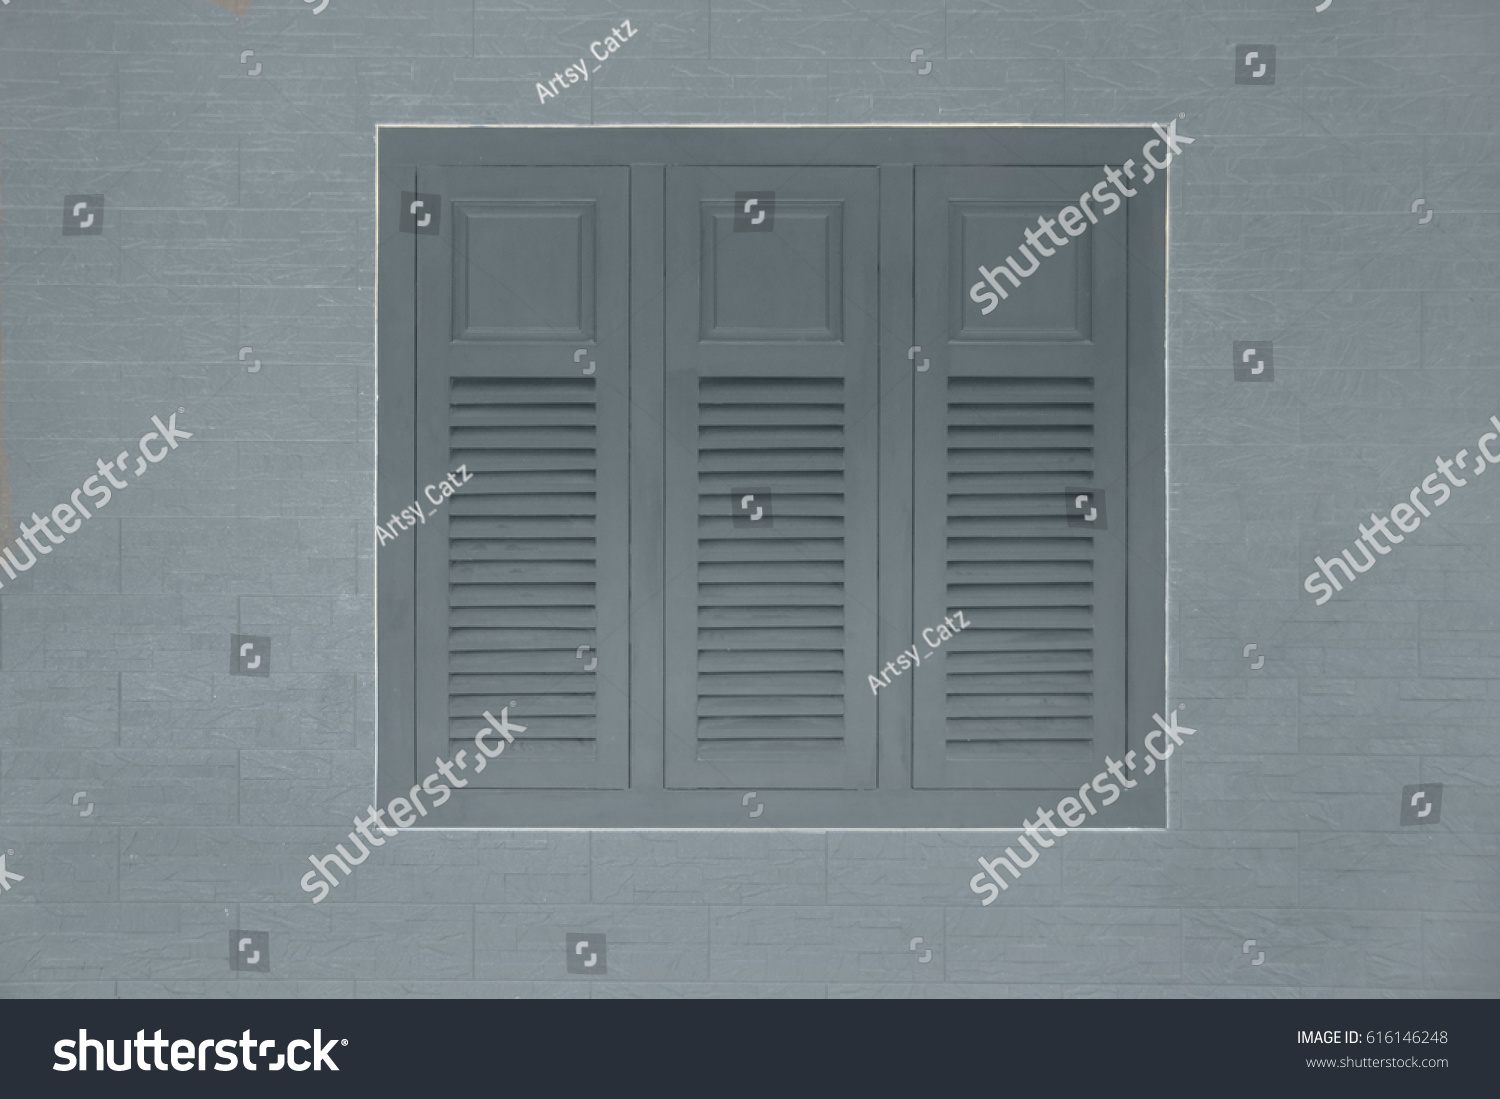 Closed Window Shutters On Tiled Wall Stock Photo (Royalty Free ...